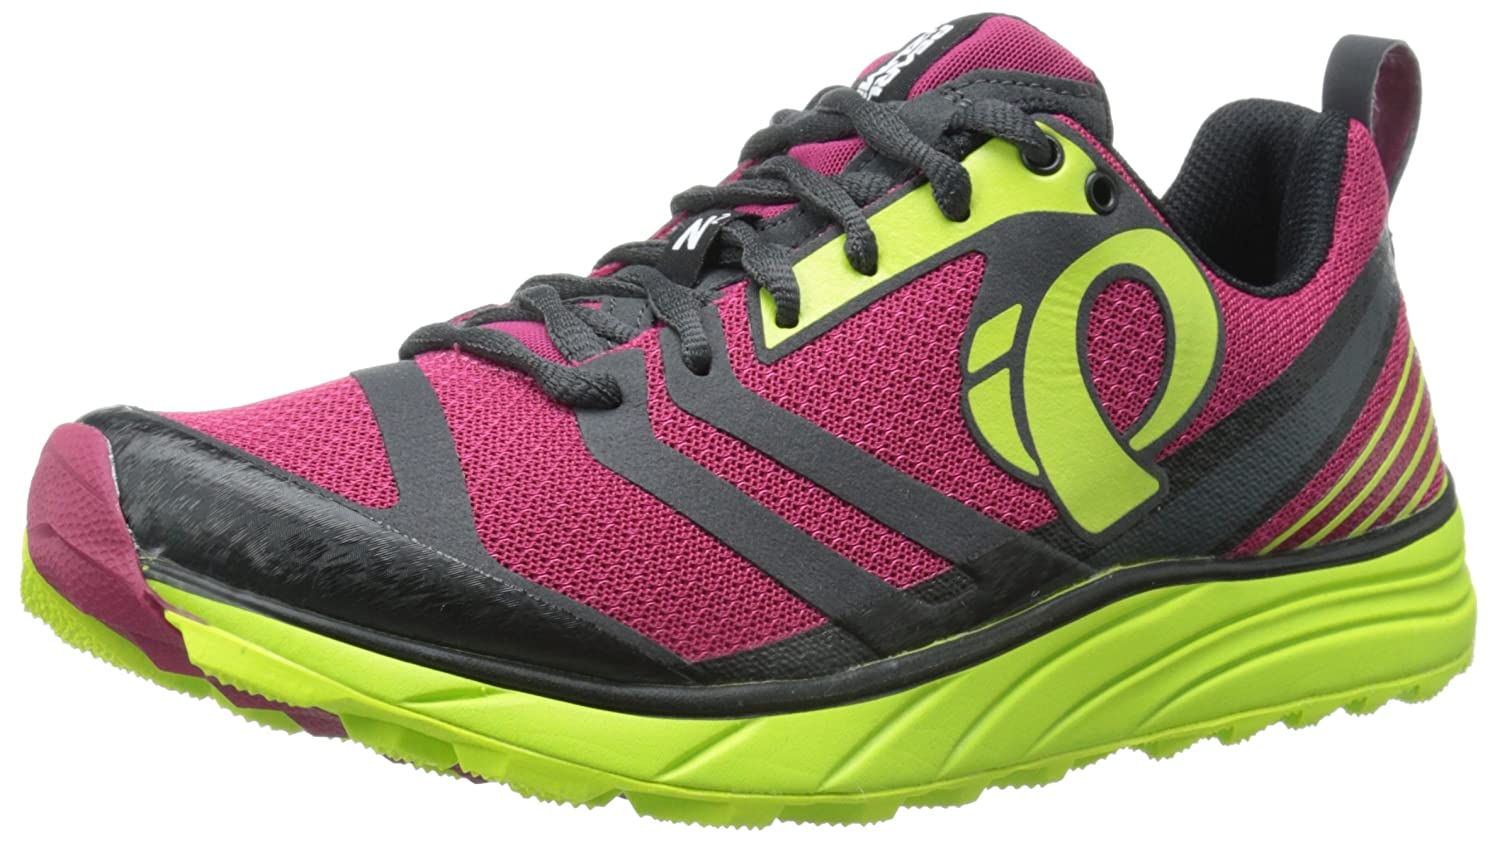 Pearl iZUMi Women's EM Trail N2 v2 Running Shoe B00QY87PXM 6 B(M) US|Cerise/Lime Punch